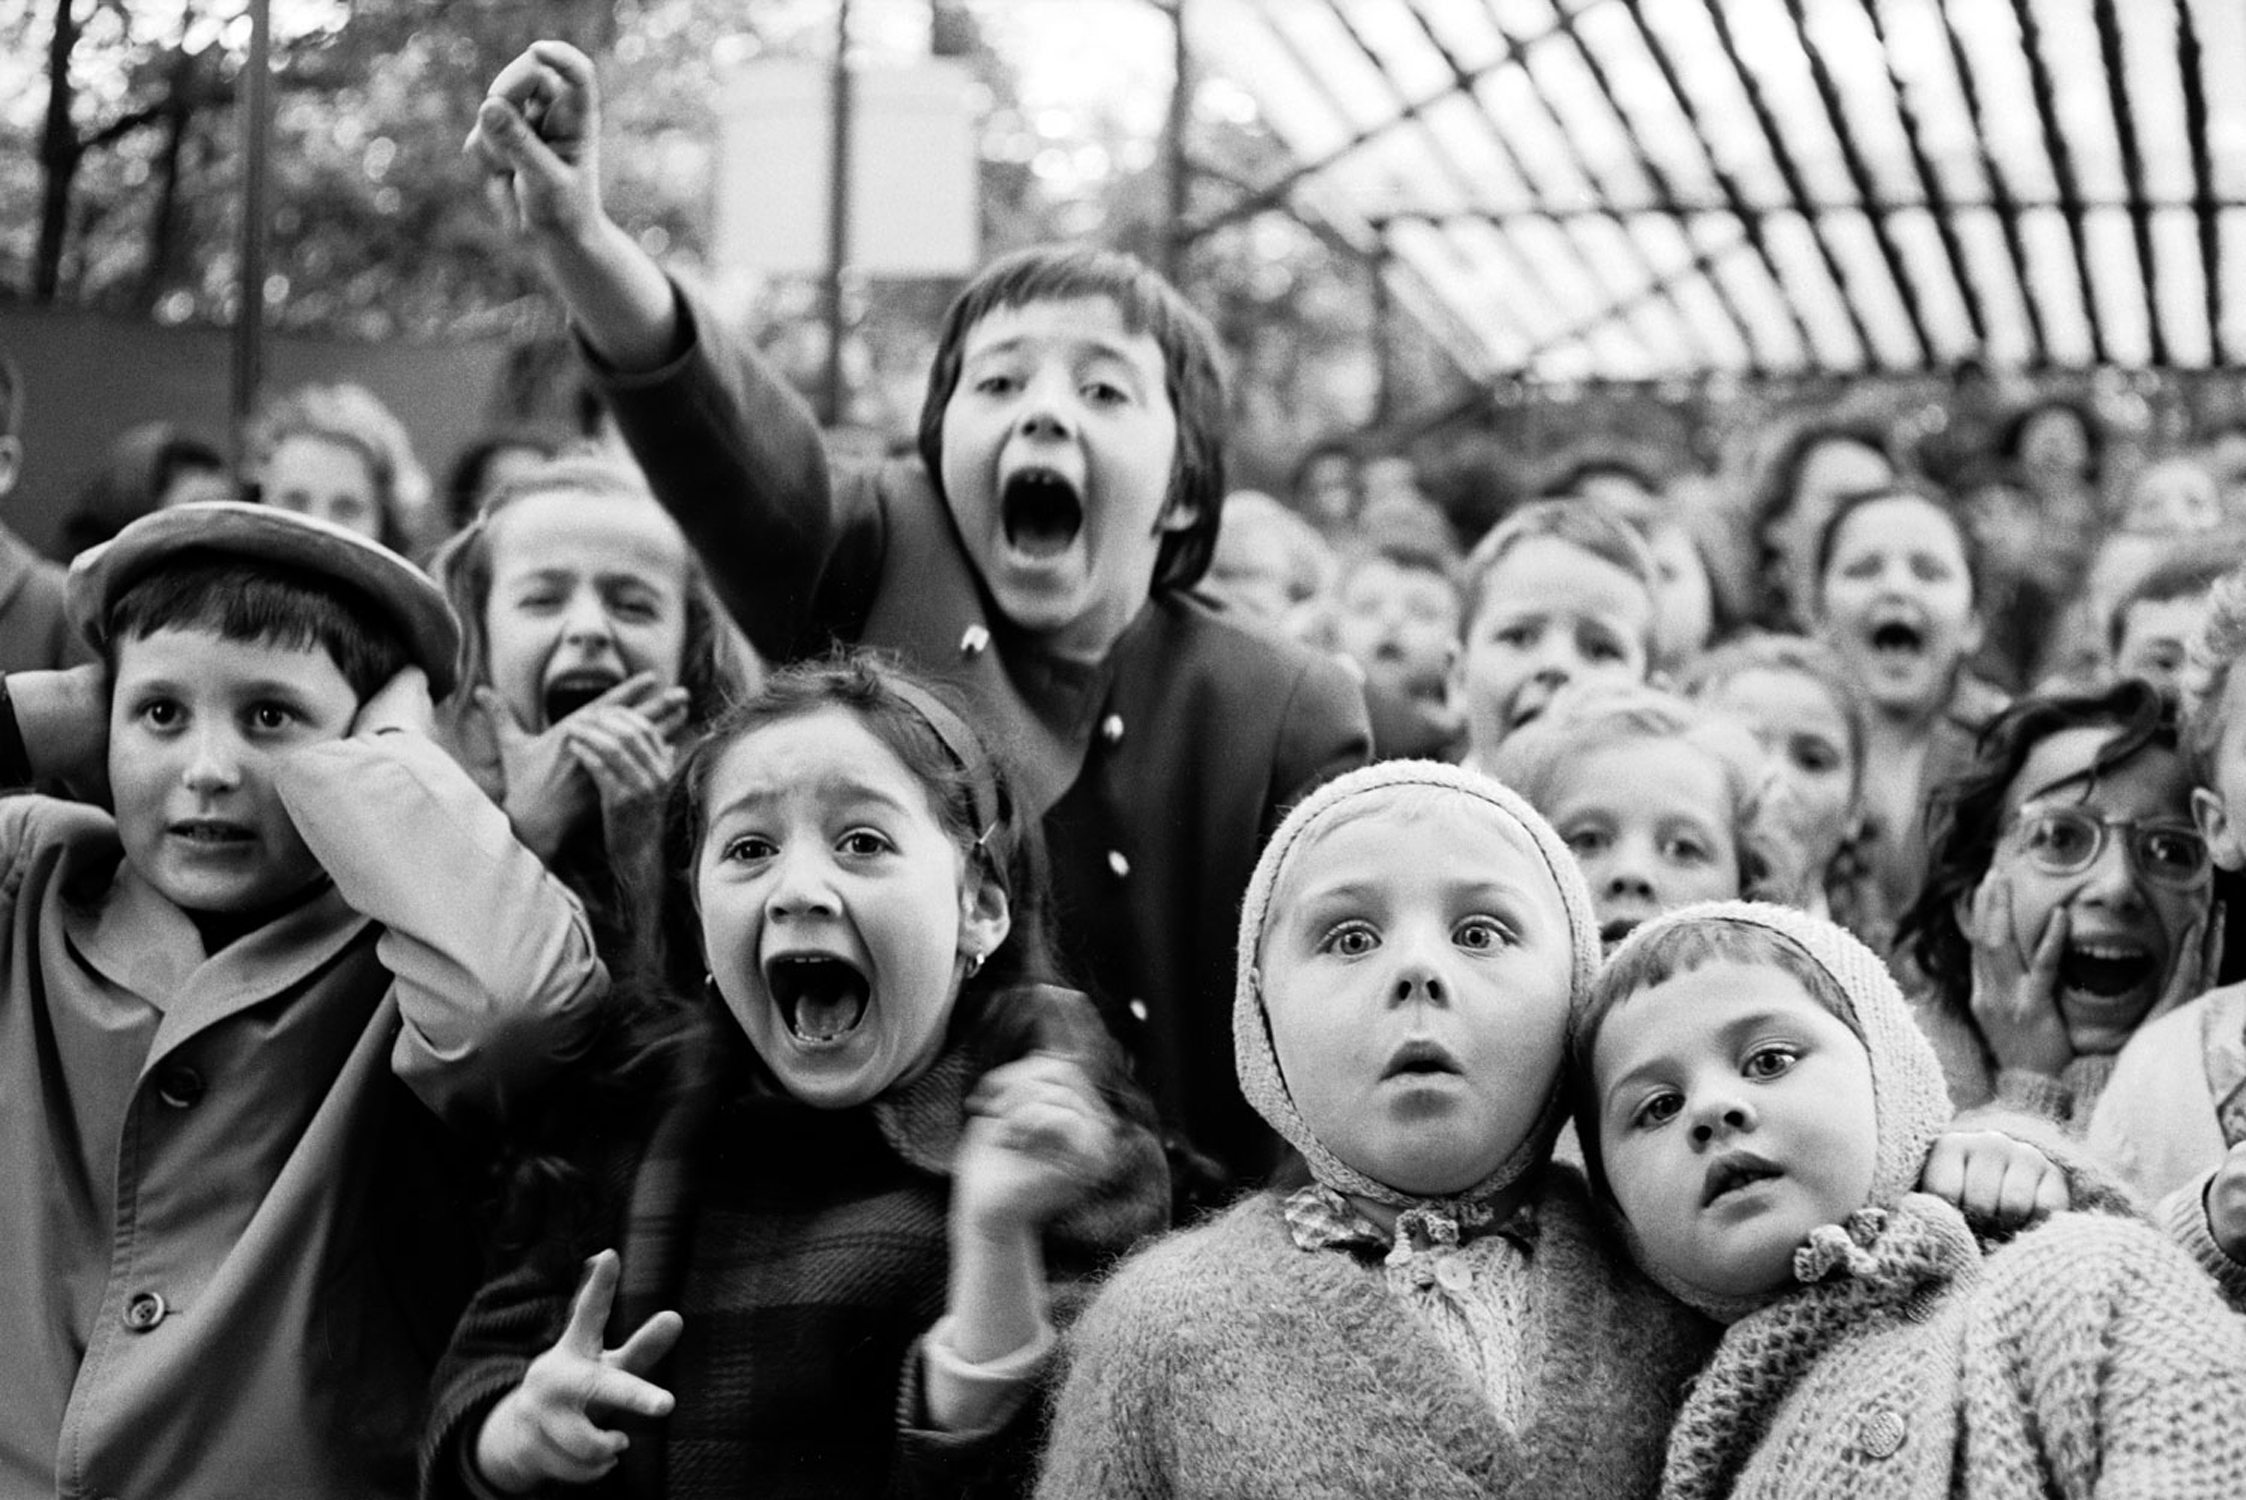 children-watching-saint-george-slay-the-dragon-at-the-puppet-theater-in-the-tuileries-paris-1963